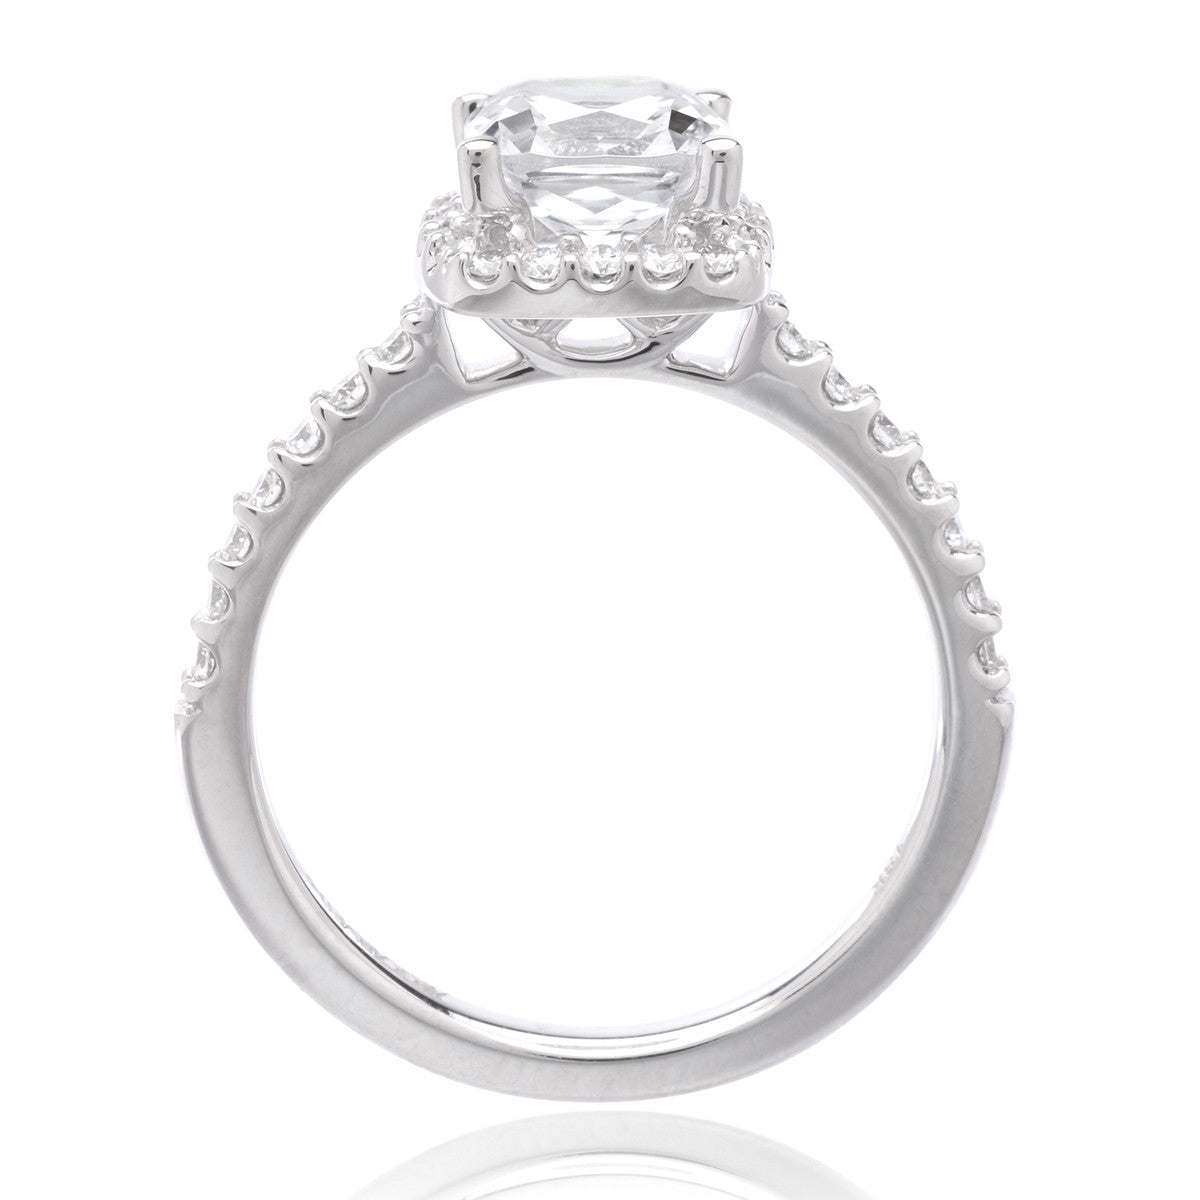 18K White Gold Cushion Halo Engagement Ring Setting